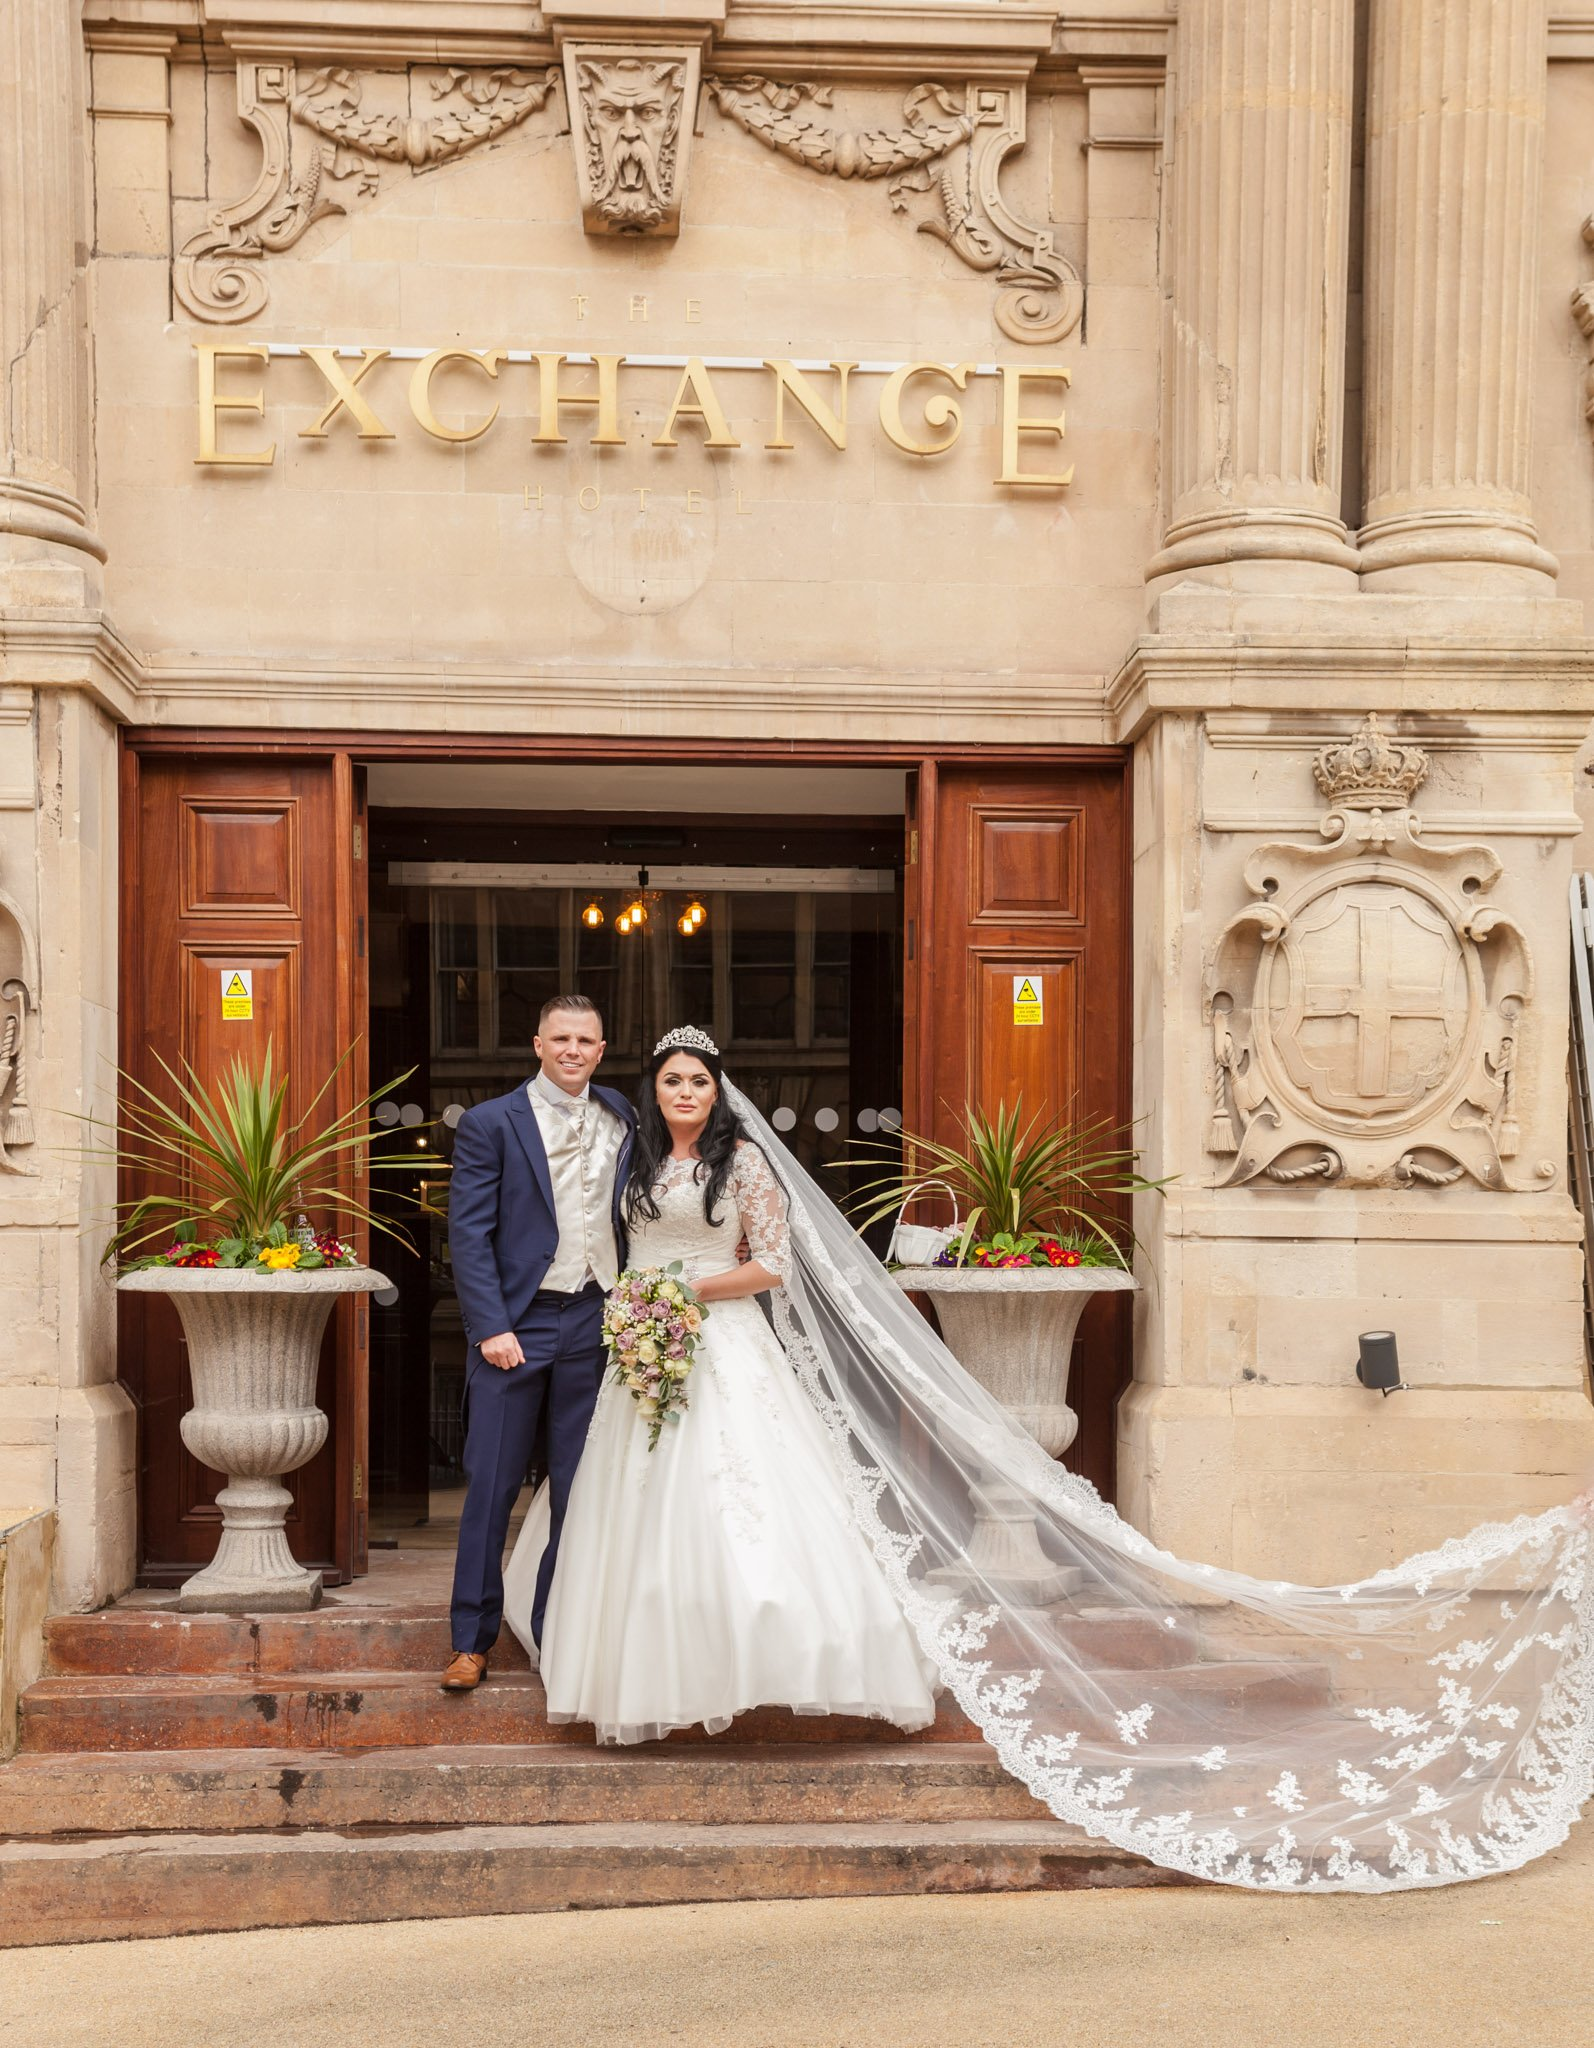 Wedding of Lena & Mark at The Exchange Hotel Cardiff, Tania Miller Photography, Cardiff Wedding Photographer